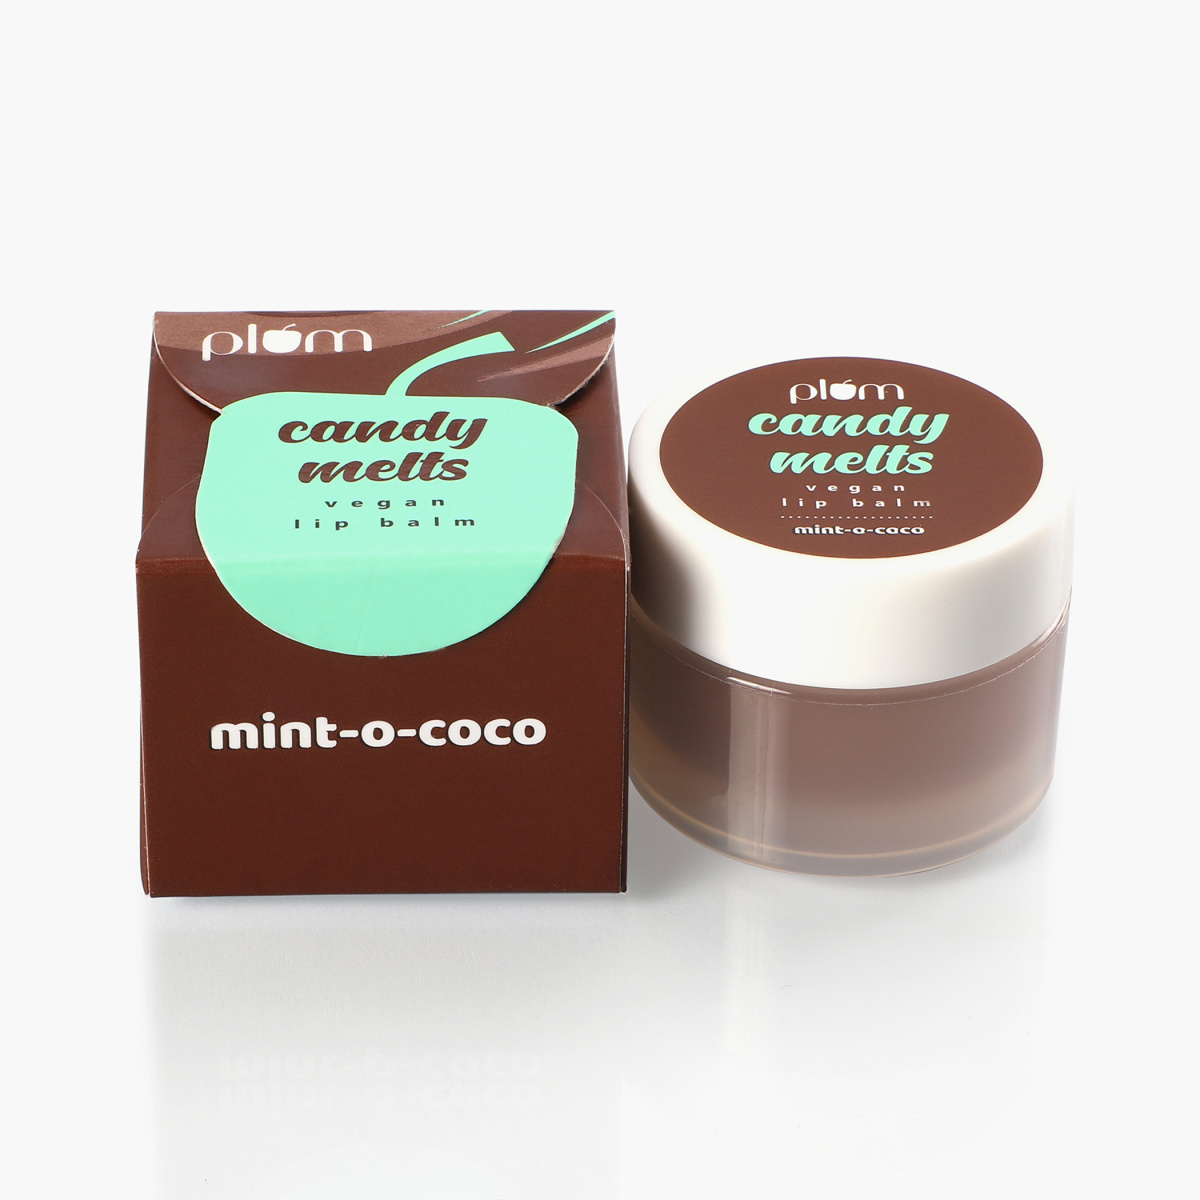 PLUM Candy Melts Vegan Lip Balm - Mint-o-Coco